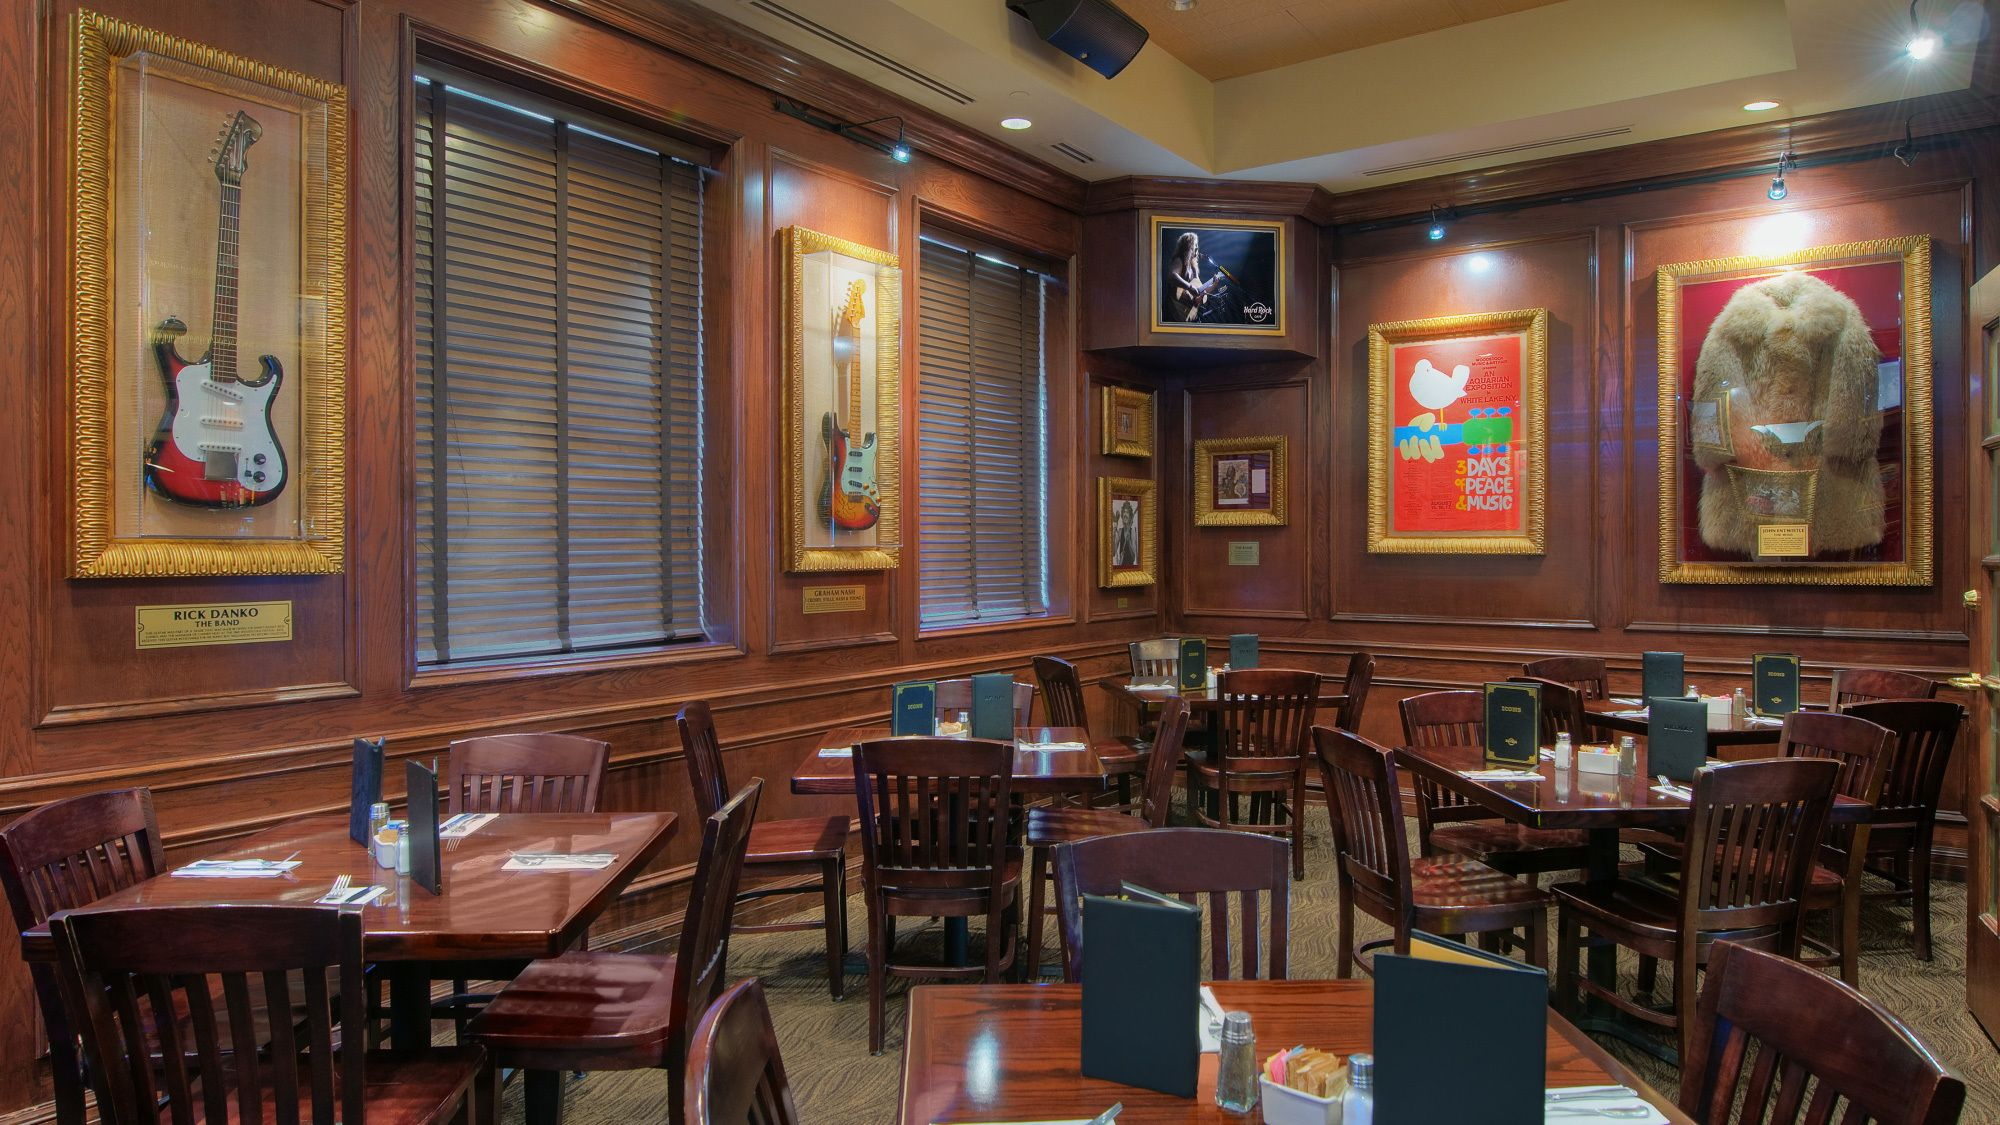 Dining area within the Hard Rock Cafe